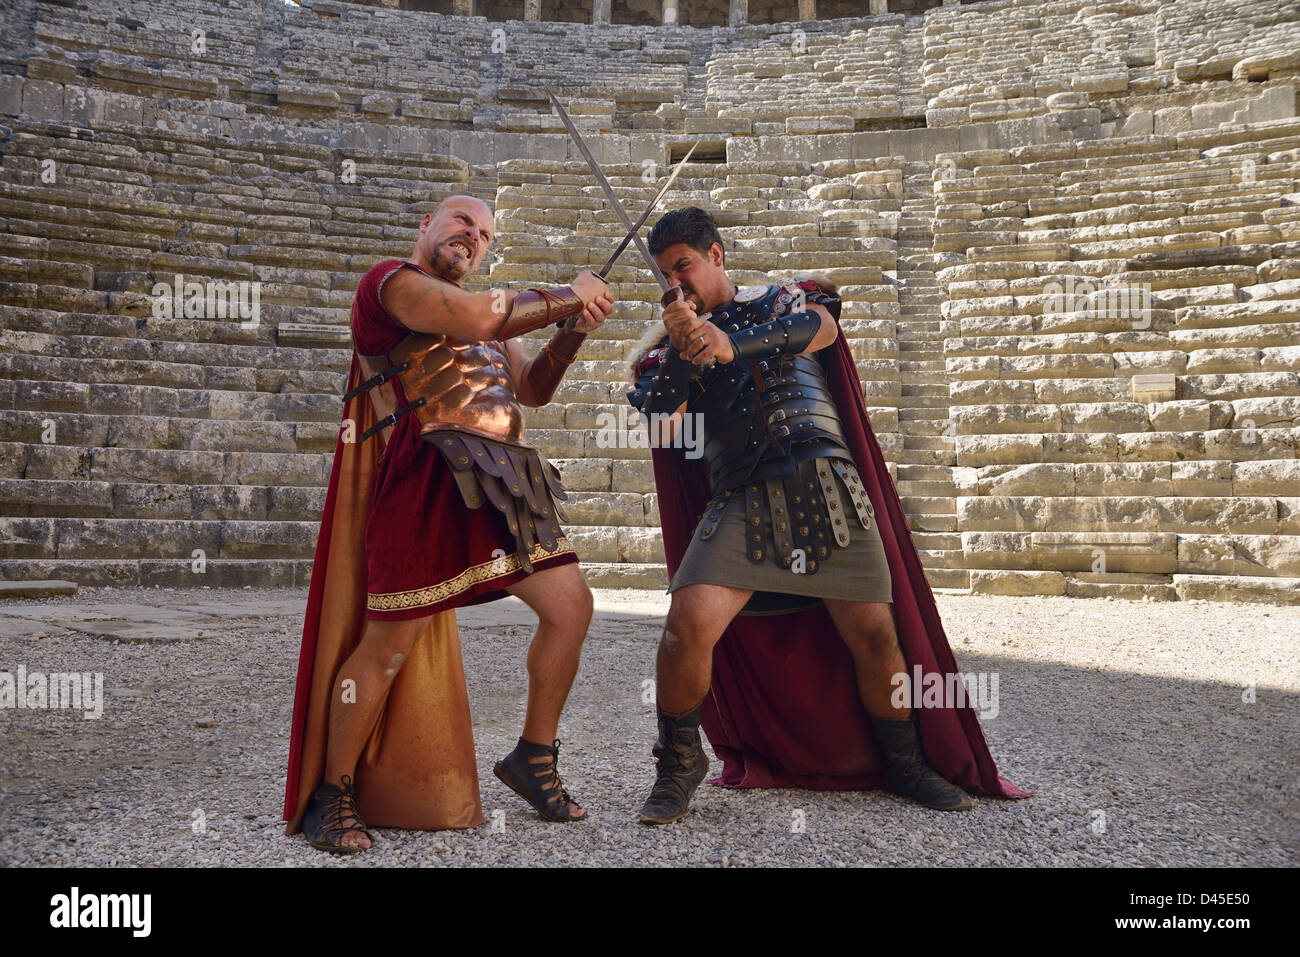 Roman Gladiators sword fighting on the stage at Aspendos theatre Turkey - Stock Image